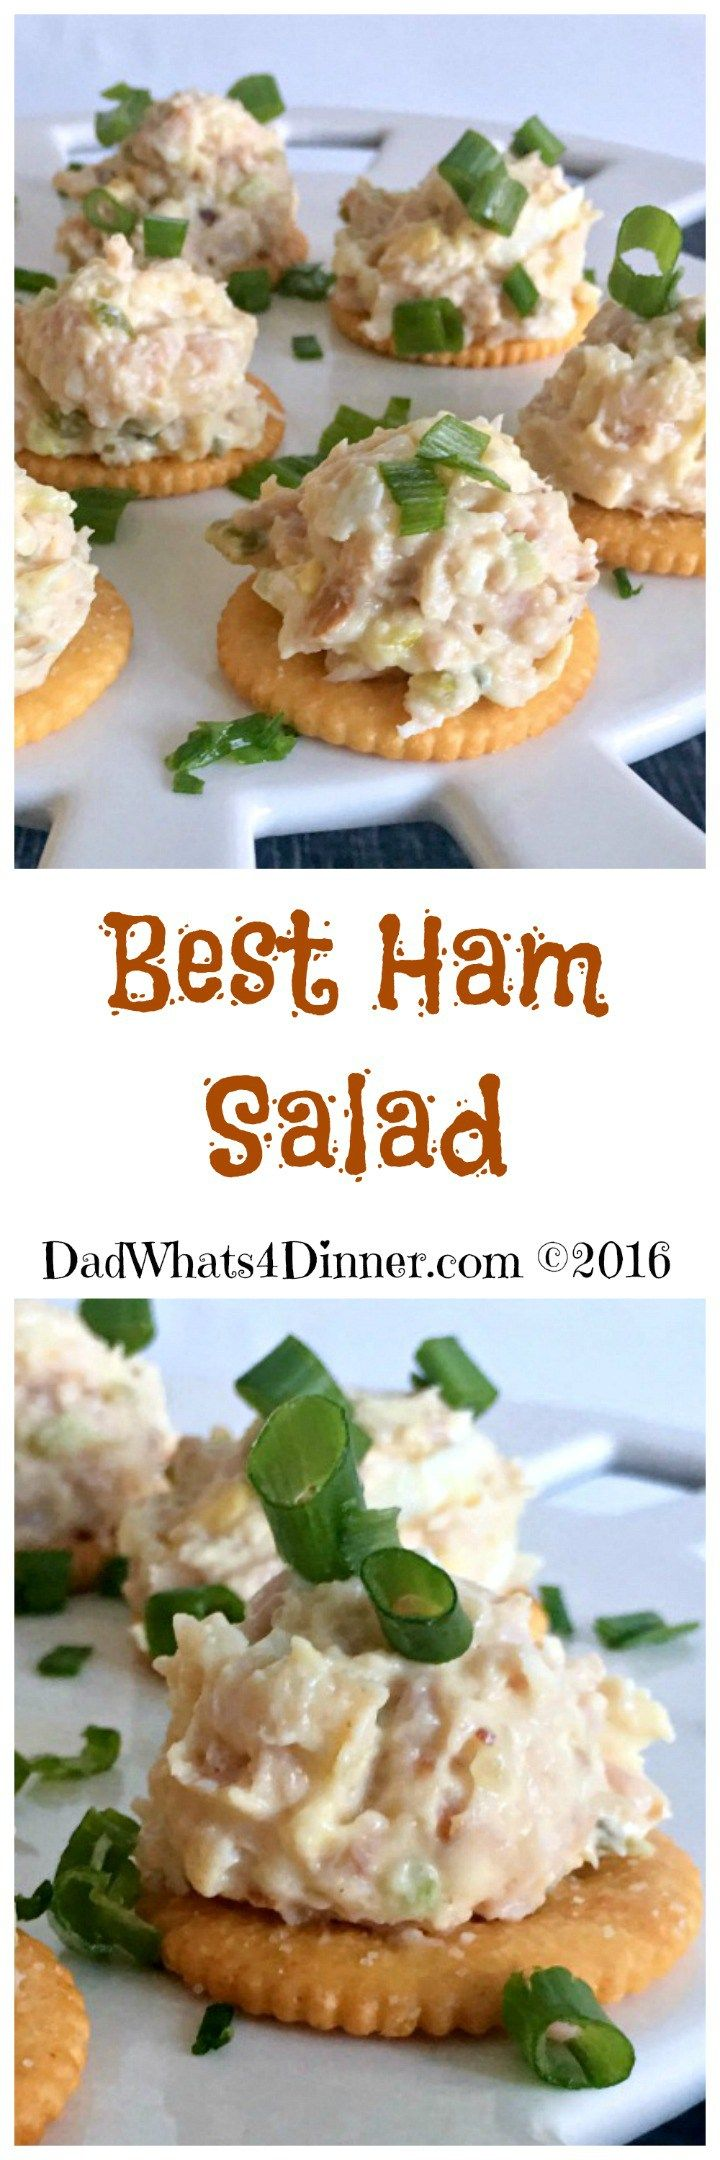 Quick and easy Best Ham Salad spread is the perfect recipe to use up that leftover holiday ham. Made with ground ham, hard-boiled eggs, mayonnaise, mustard, pickle relish and served on crackers. www.dadwhats4dinner.com ©2016